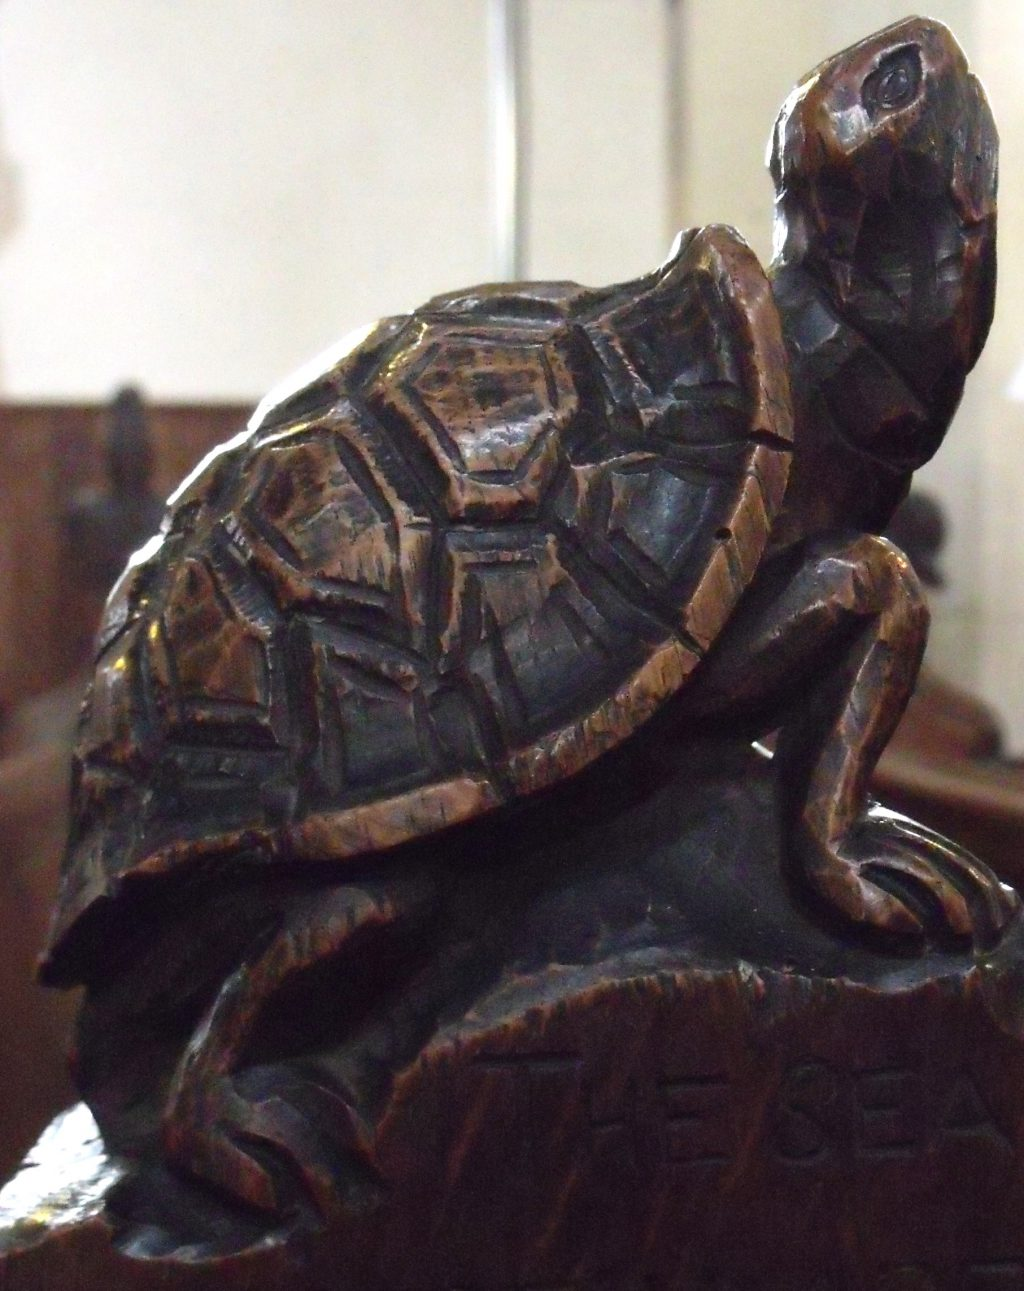 Here's an easy one. Wonder if the carpenter kept a tortoise as a pet as some people do today? This one is at Wortham.